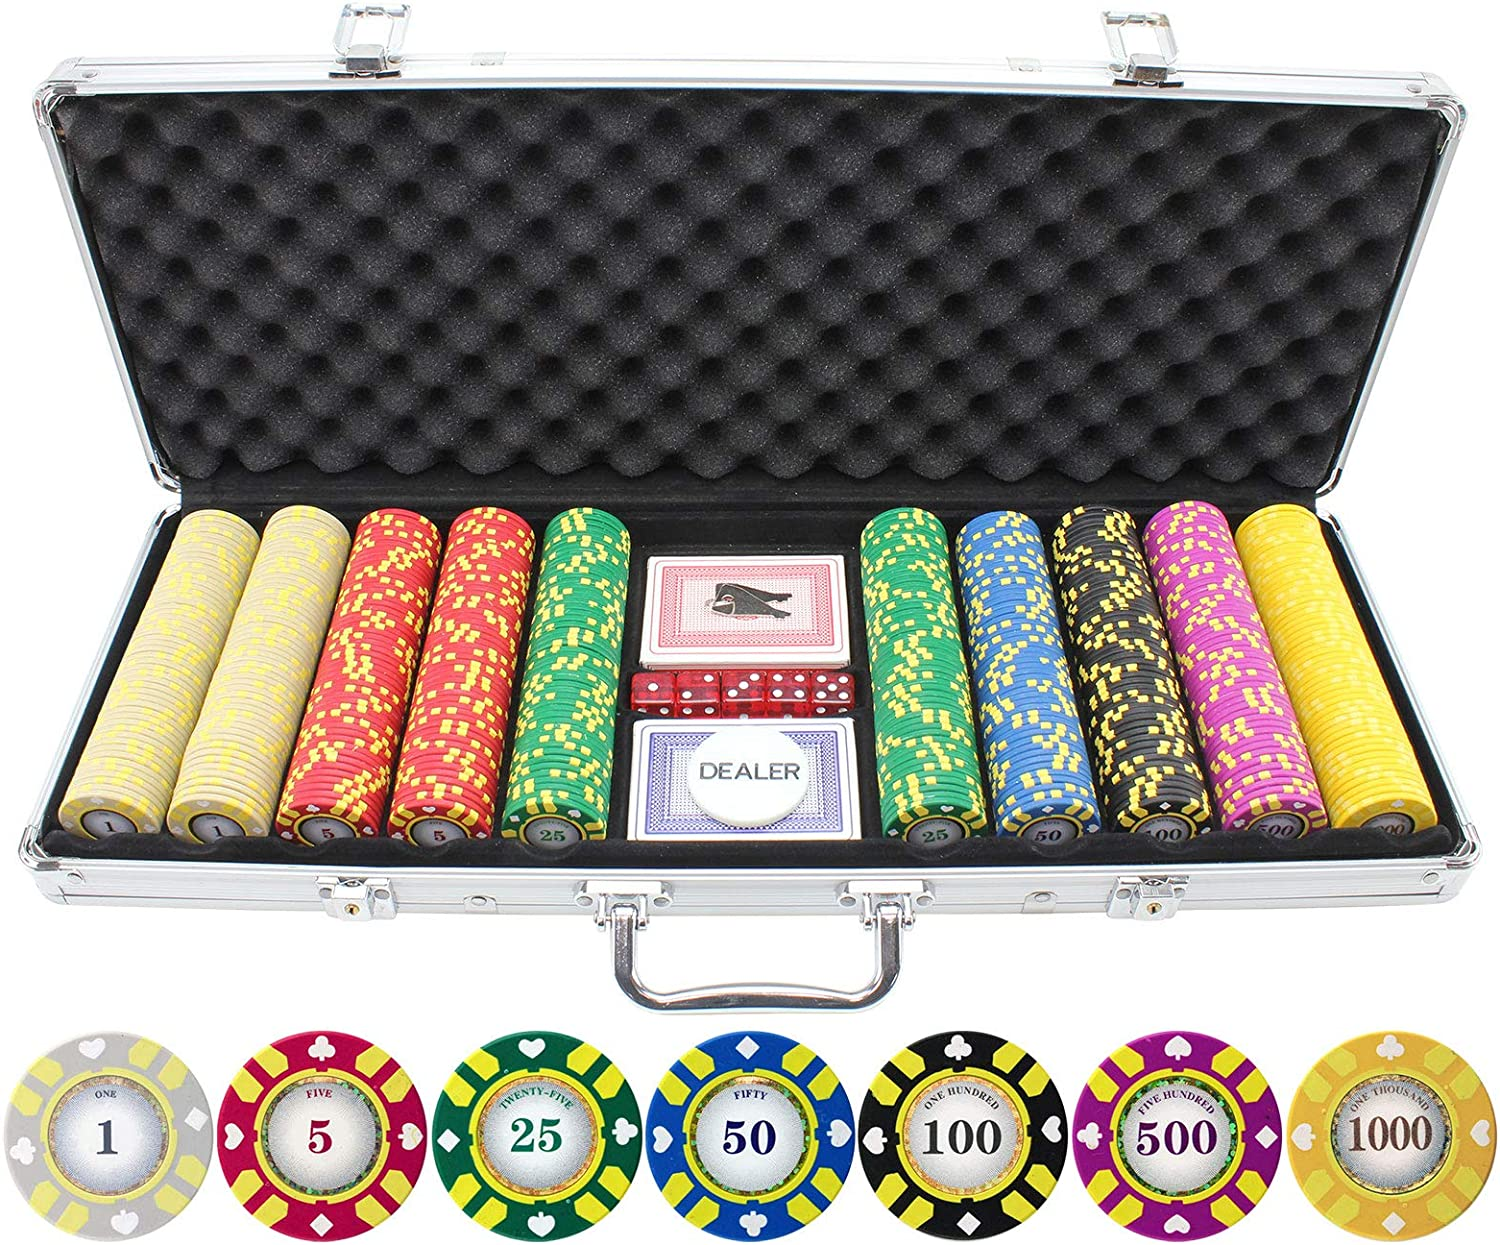 Get 1 Free 25 Blue Striped Dice 11.5g Clay Poker Chips New Buy 2